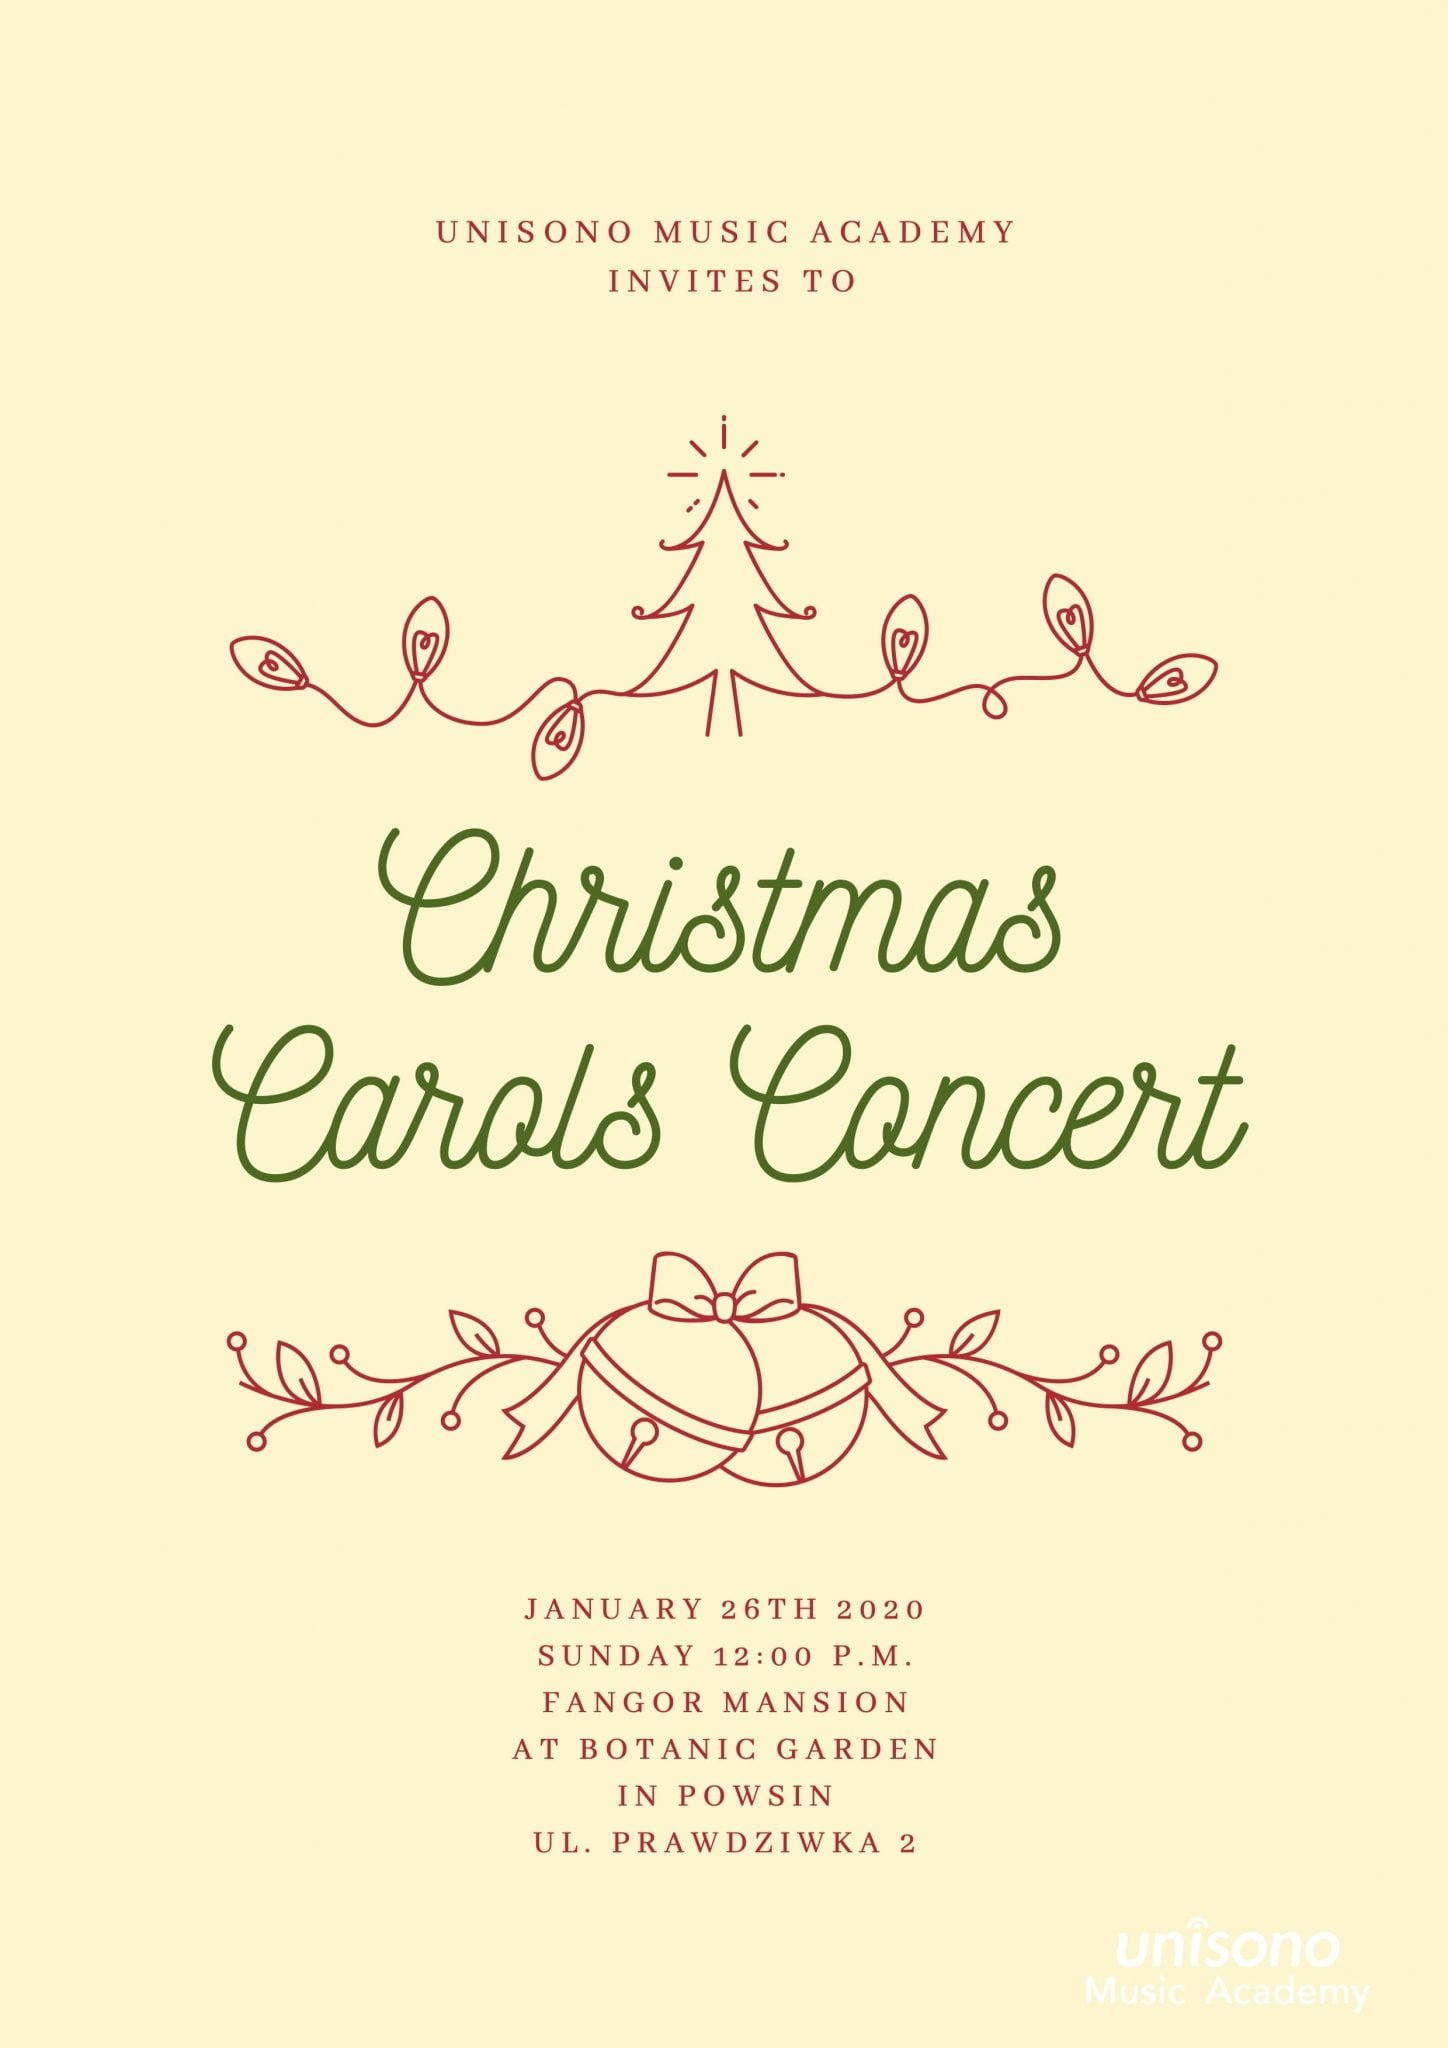 Christmas Carols Concert 2020 Invitation